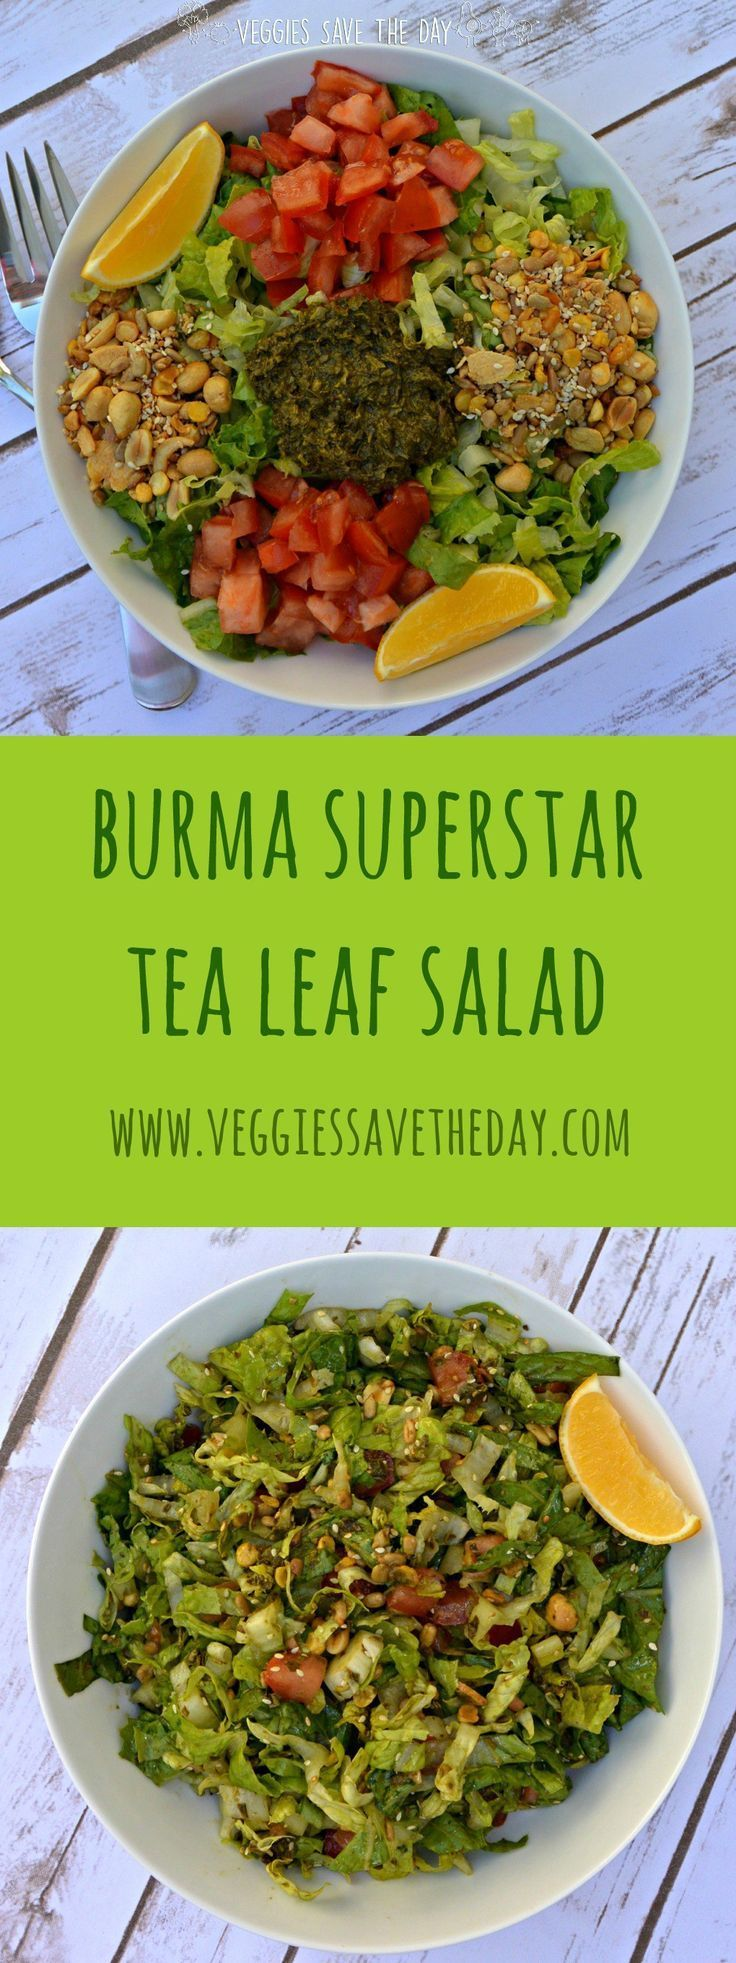 Now you can make the famous Tea Leaf Salad from Burma Superstar at home, thanks to their easy Burma Love Laphet Fermented Tea Leaf Salad Mix. . Get this recipe and more like this when you visit http://www.veggiessavetheday.com, or pin and save for later!